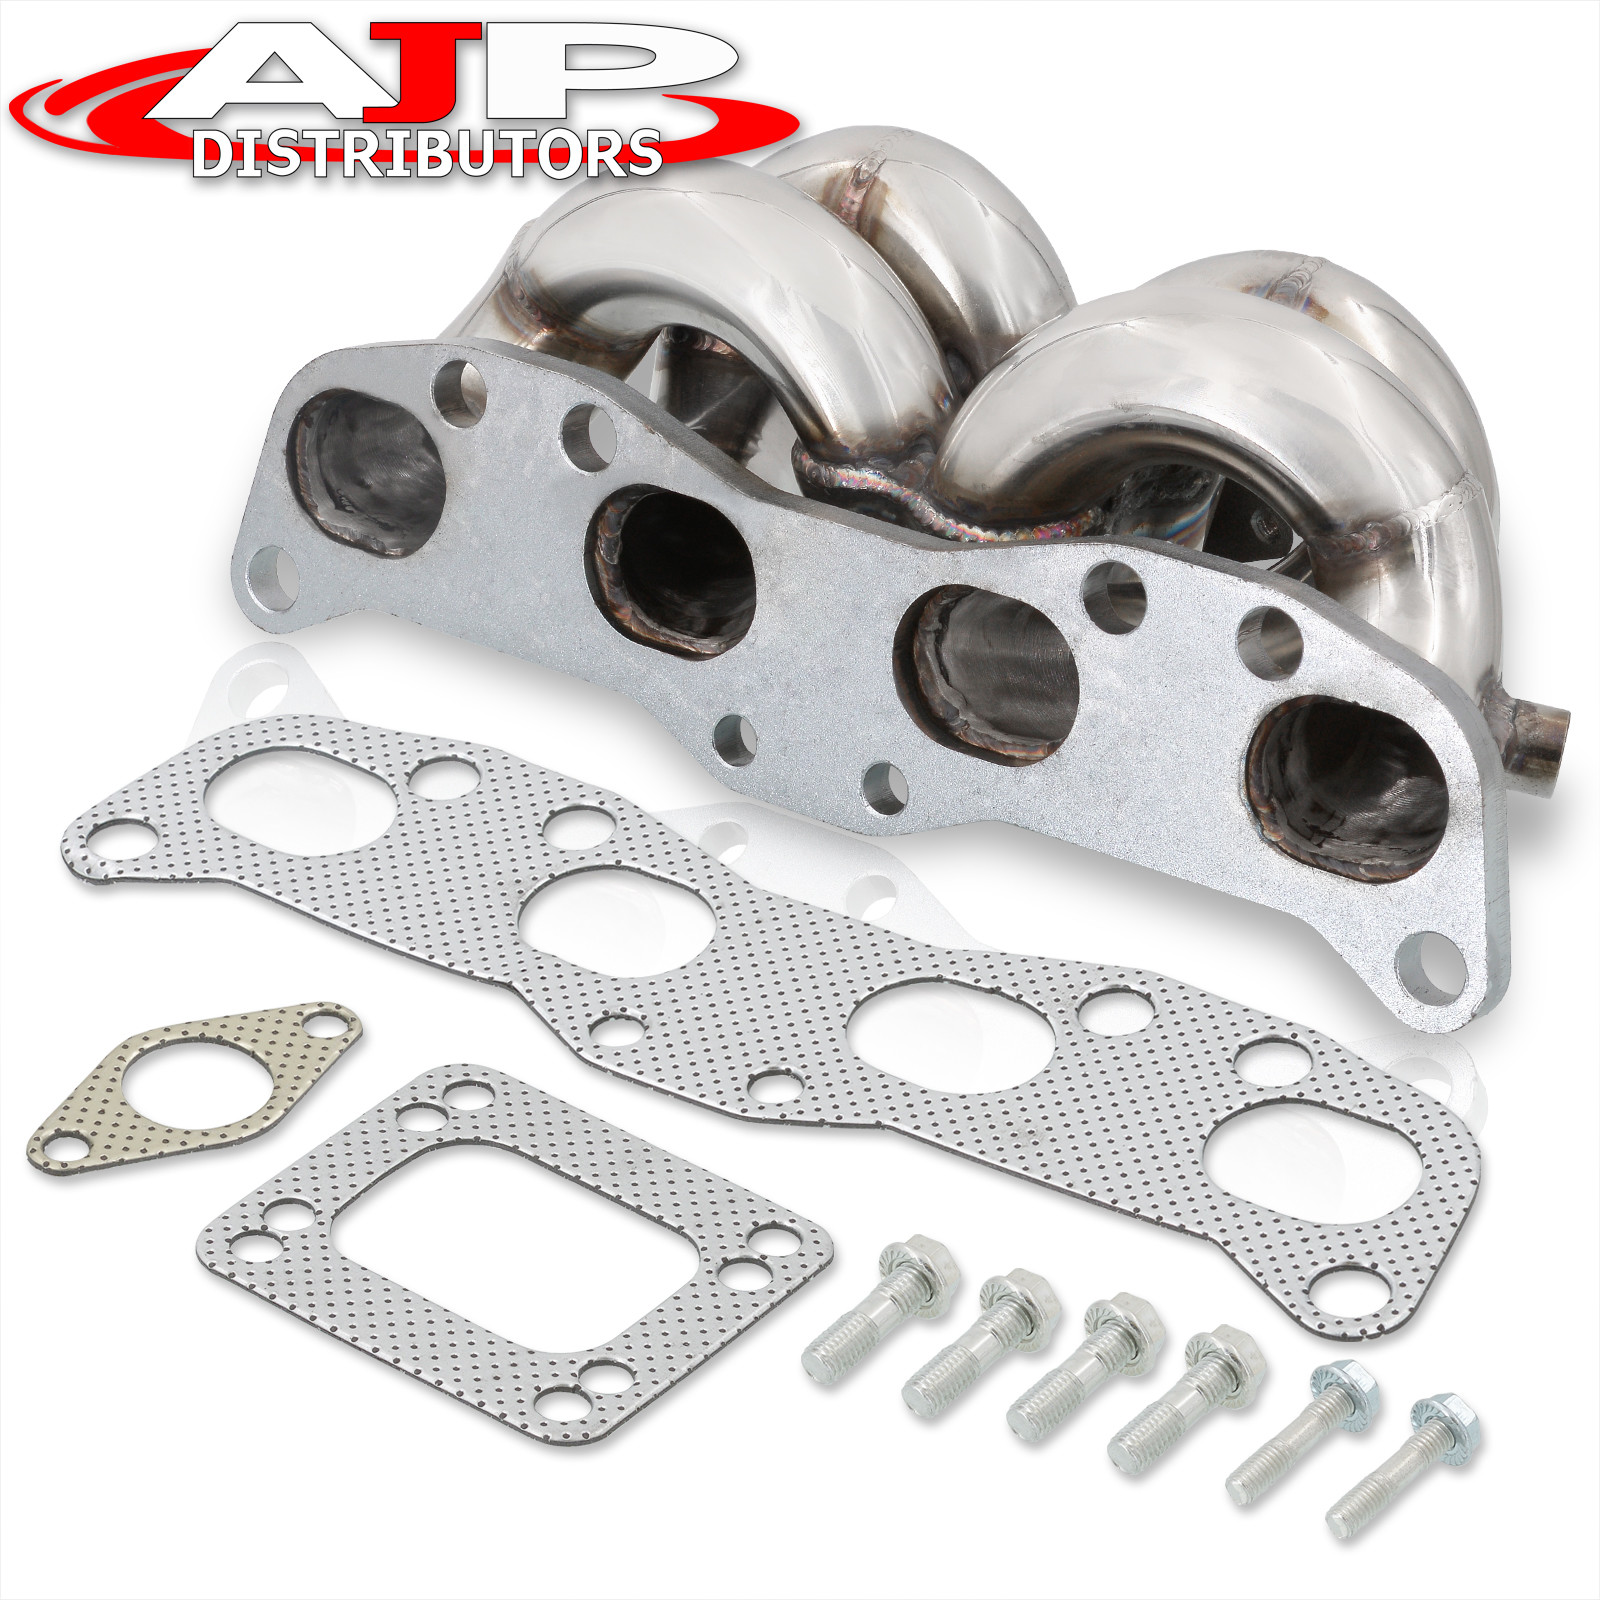 Stainless Exhaust Manifold Head FOR Nissan Silvia S13 180SX CA18DET Top Mount